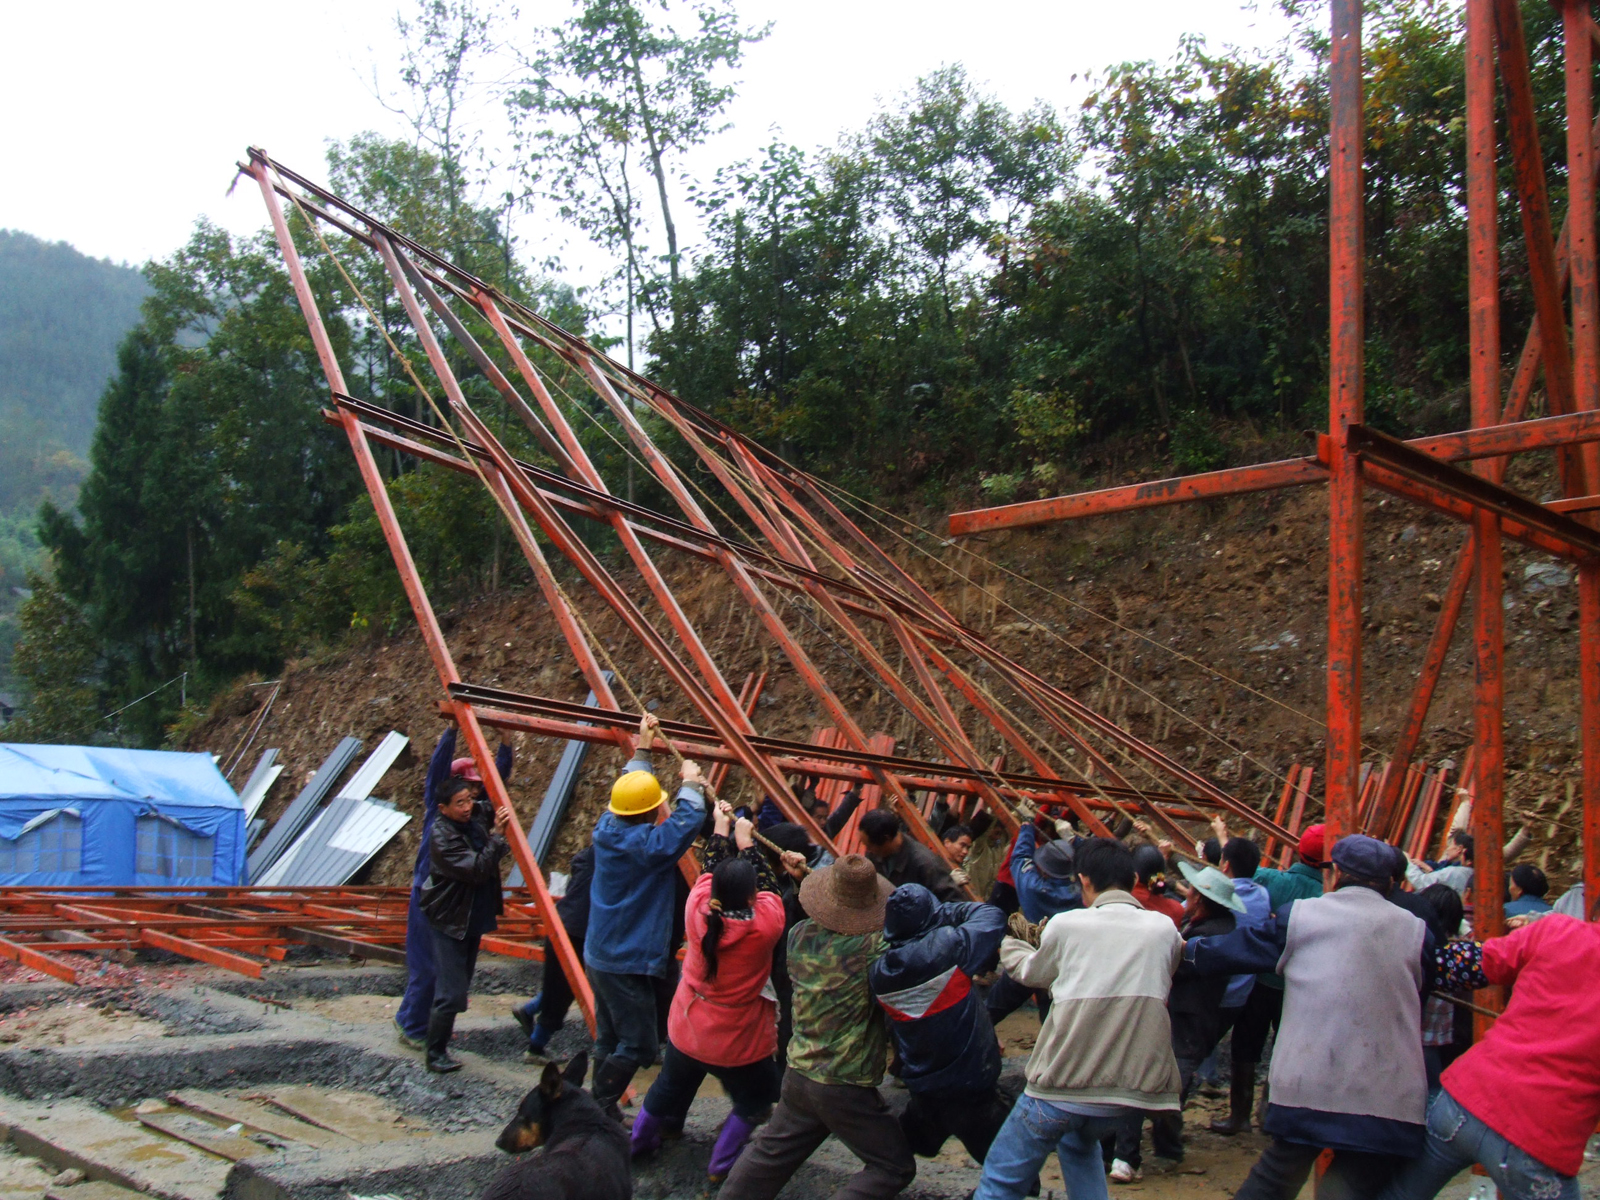 Villagers raise one of the structures Hseih Ying-Chun designed.